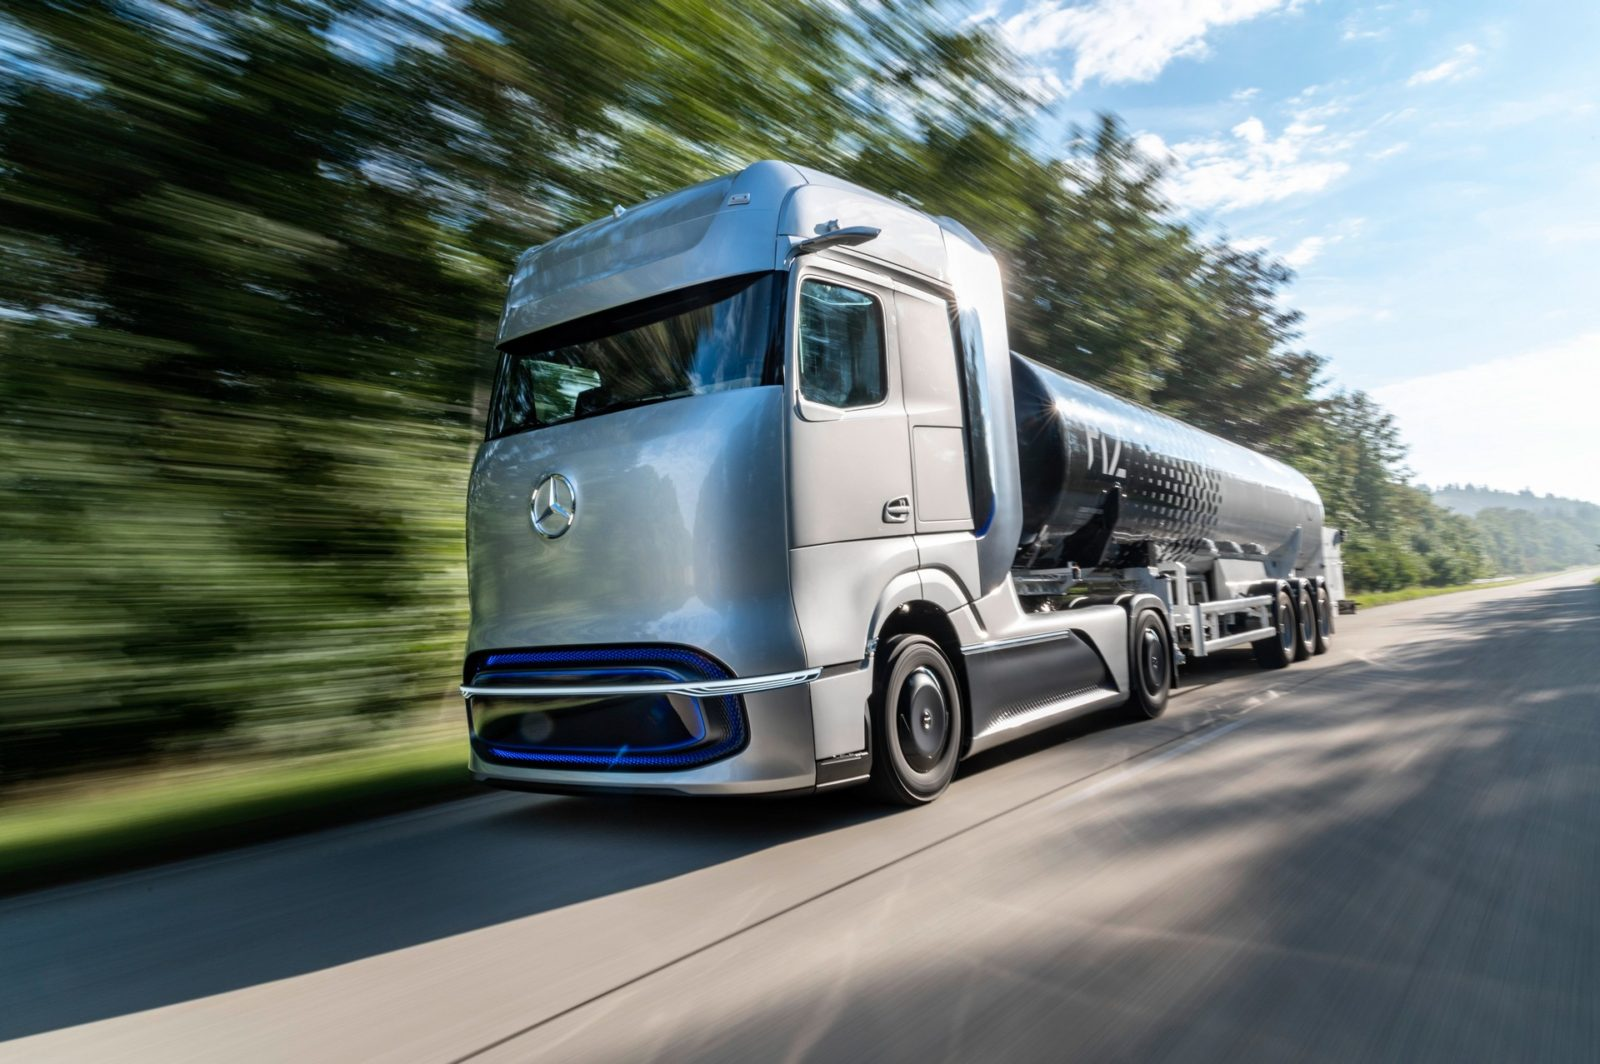 mercedes-benz-genh2-truck-might-be-the-biggest-visual-let-down-in-automotive-history